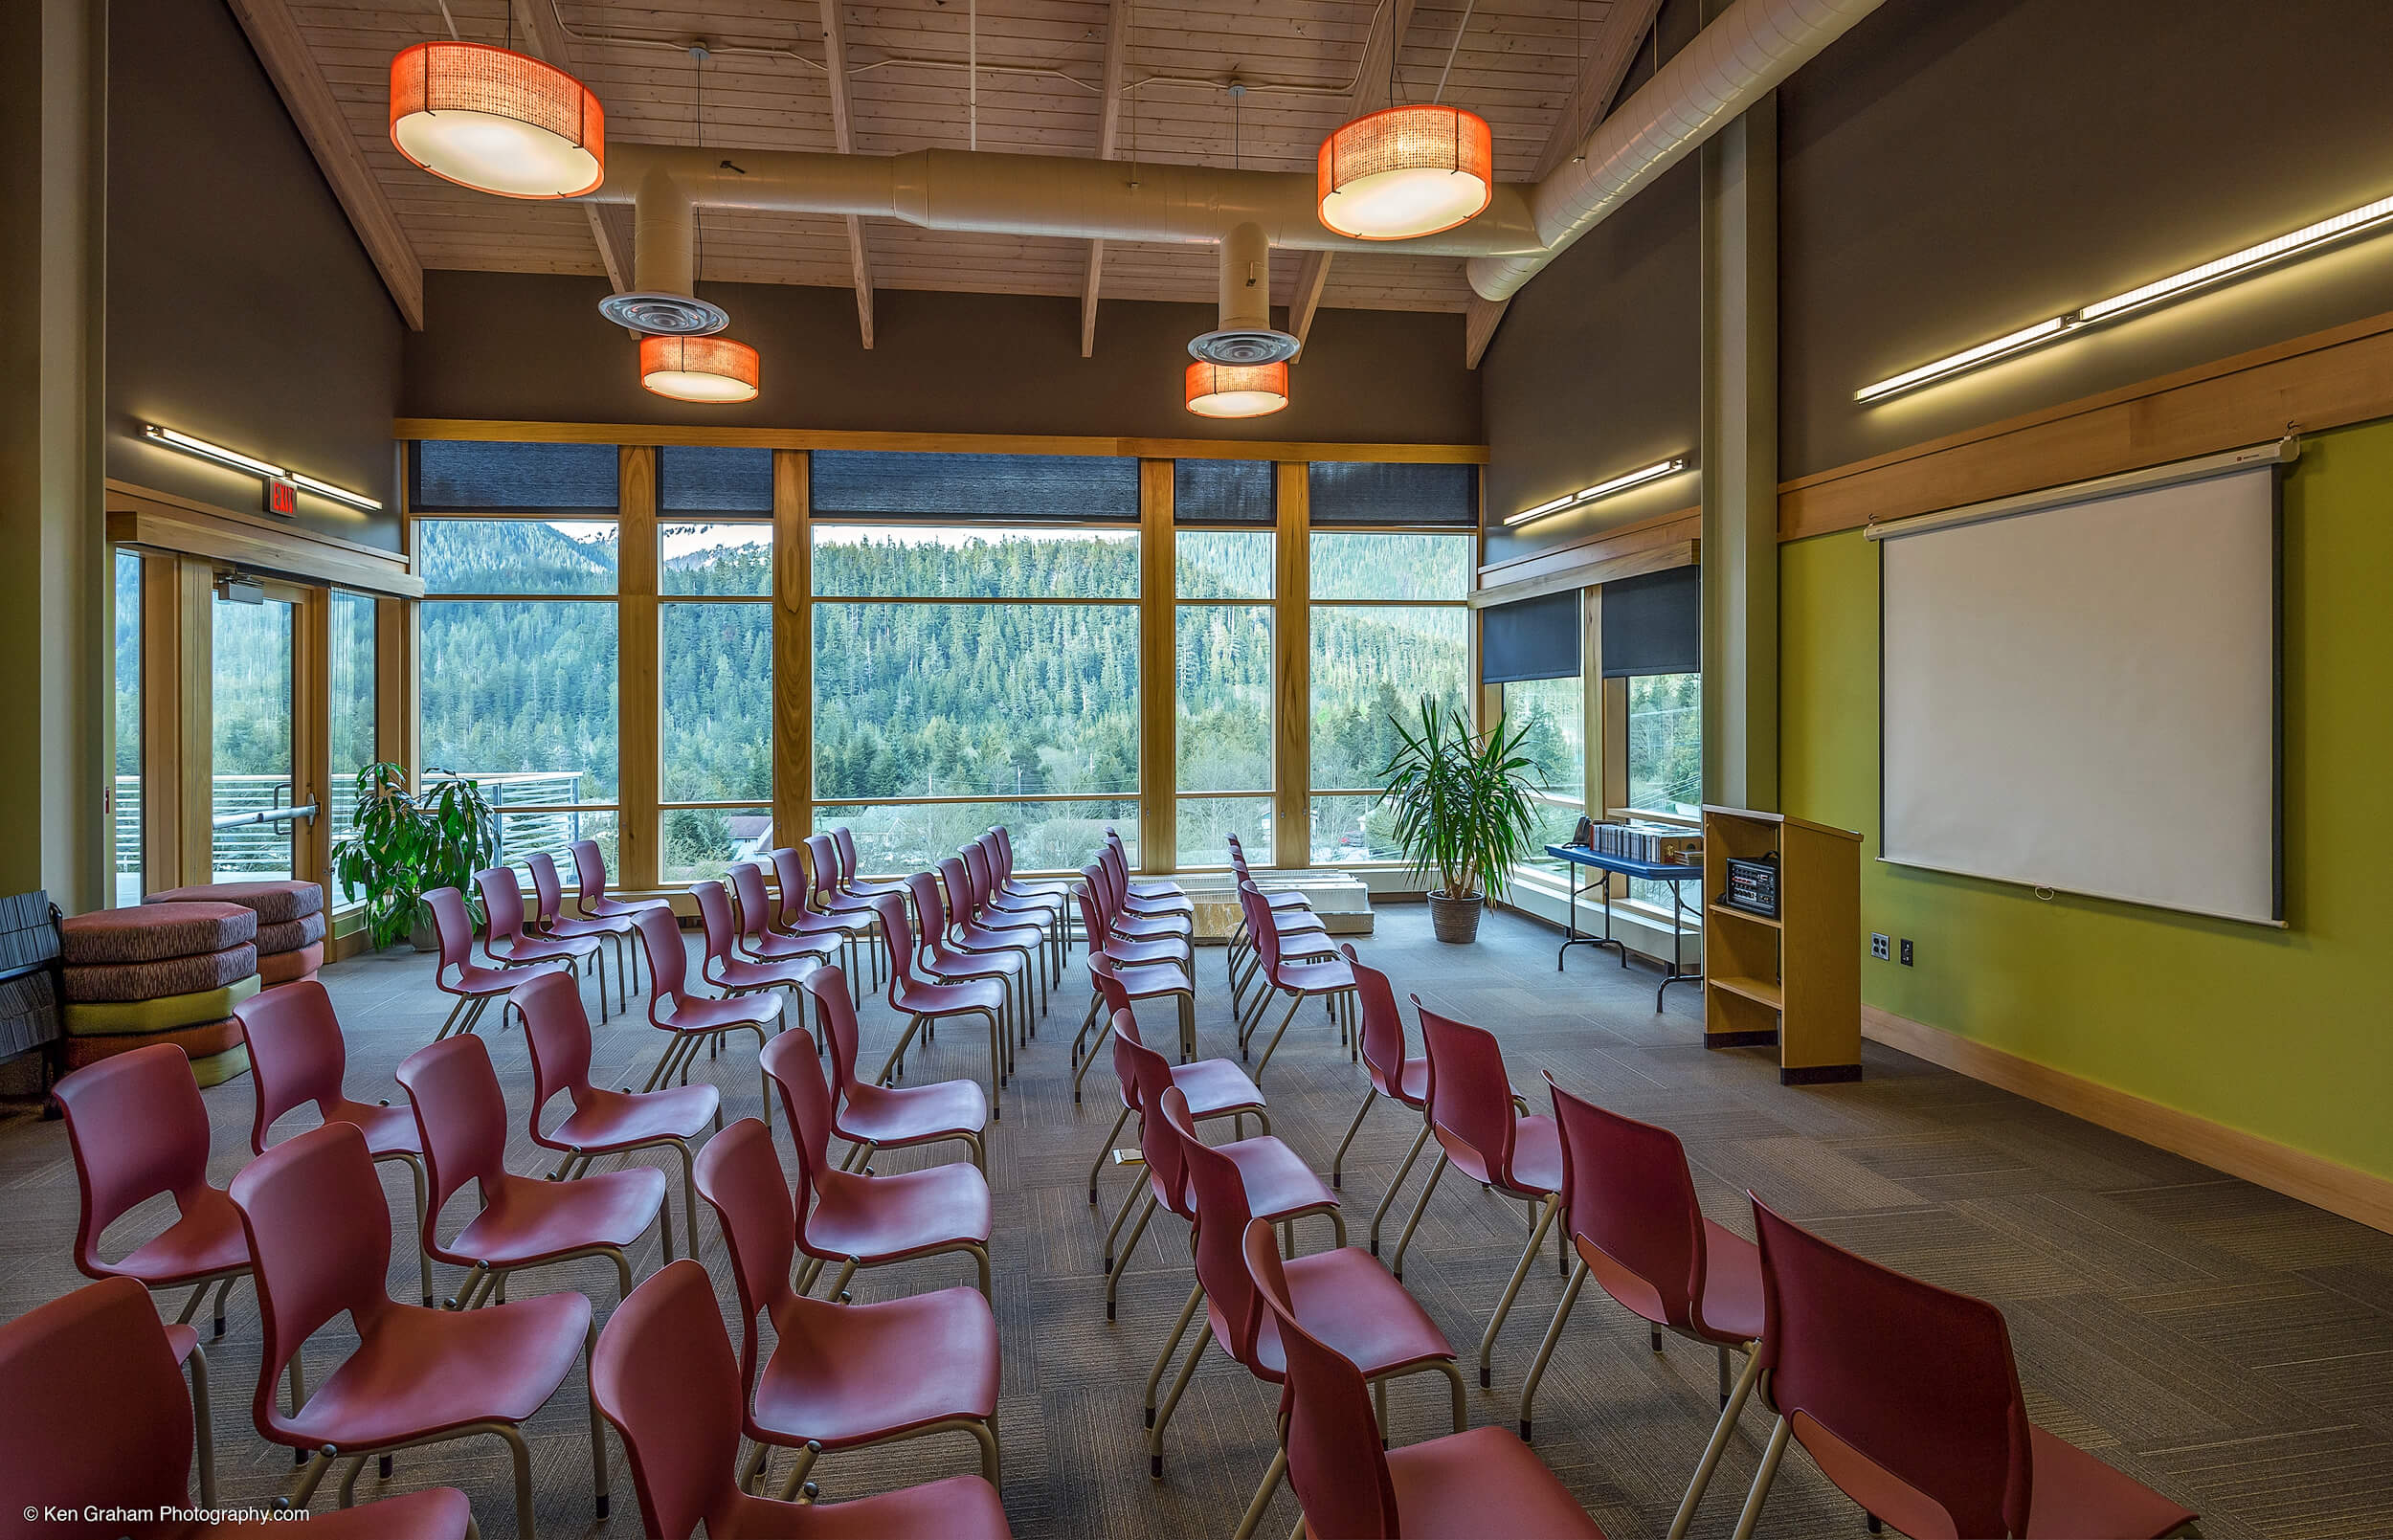 Expand Mendenhall Valley Library Presentation Room